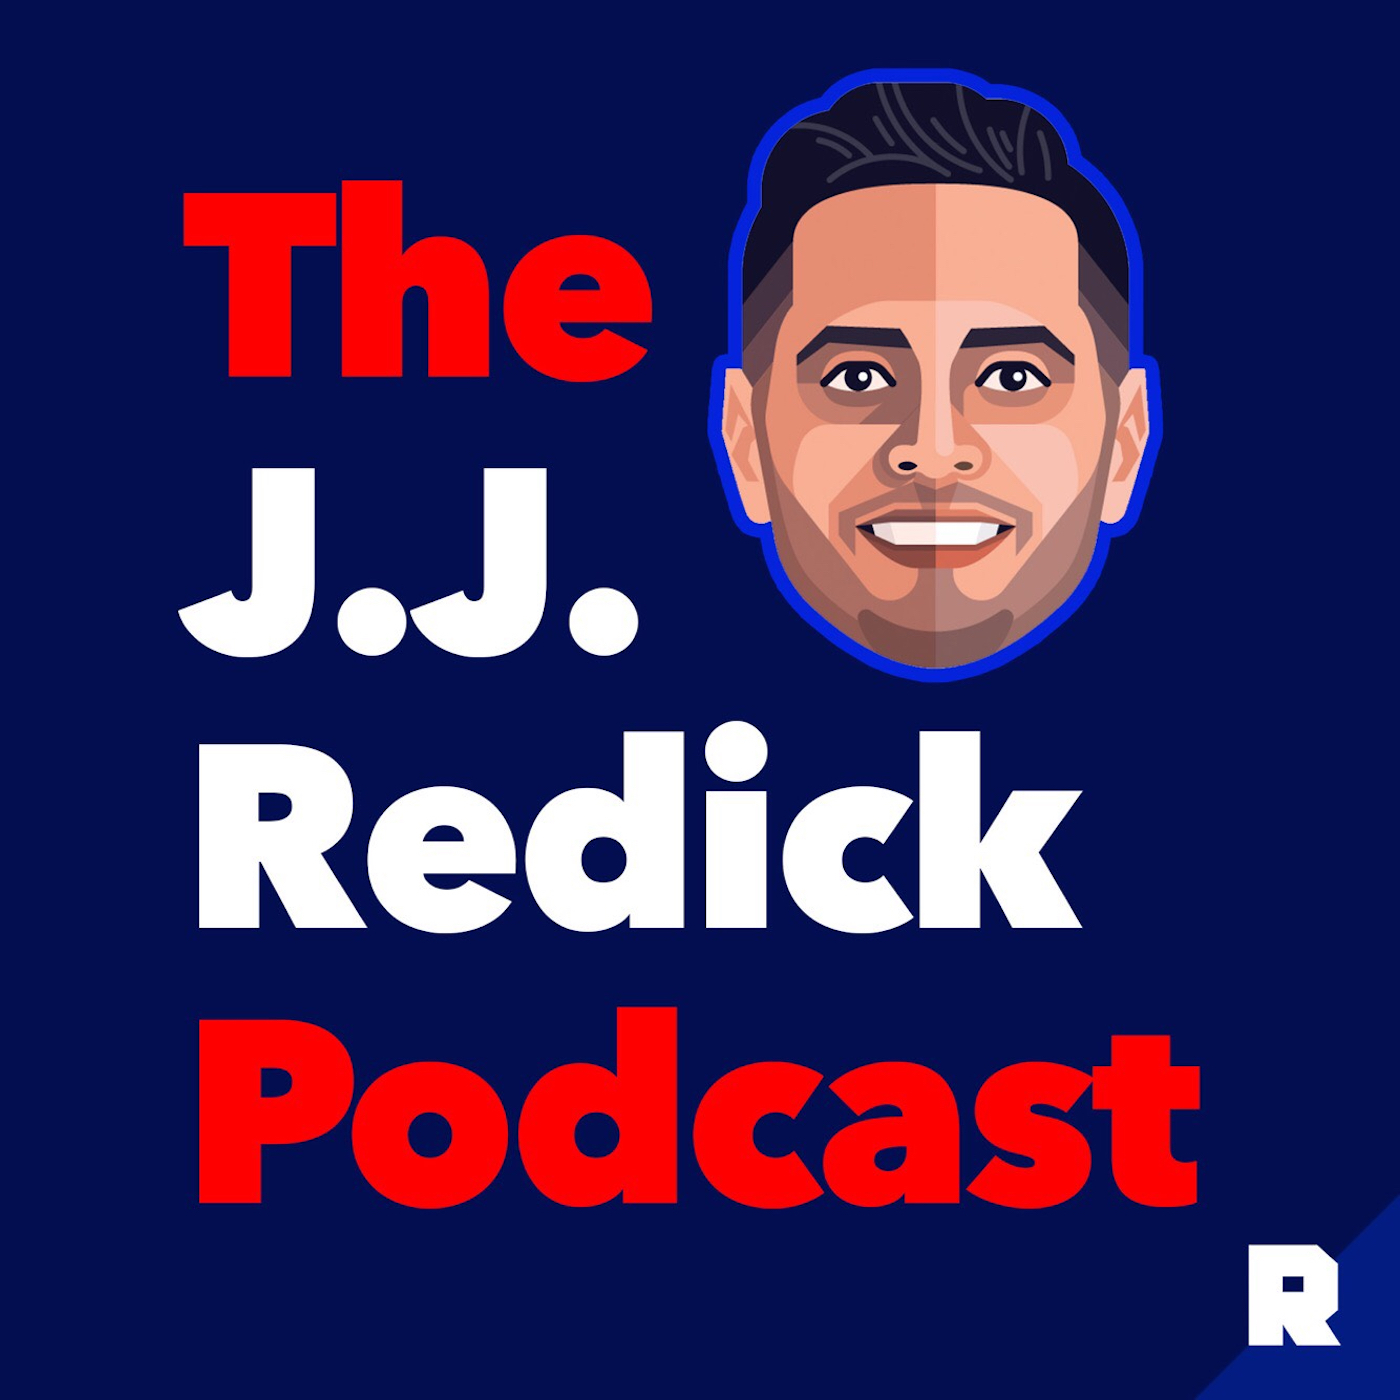 Missy Robbins on Williamsburg, Cooking for the Obamas, and Enjoying the Process | The J.J. Redick Podcast (Ep. 17)